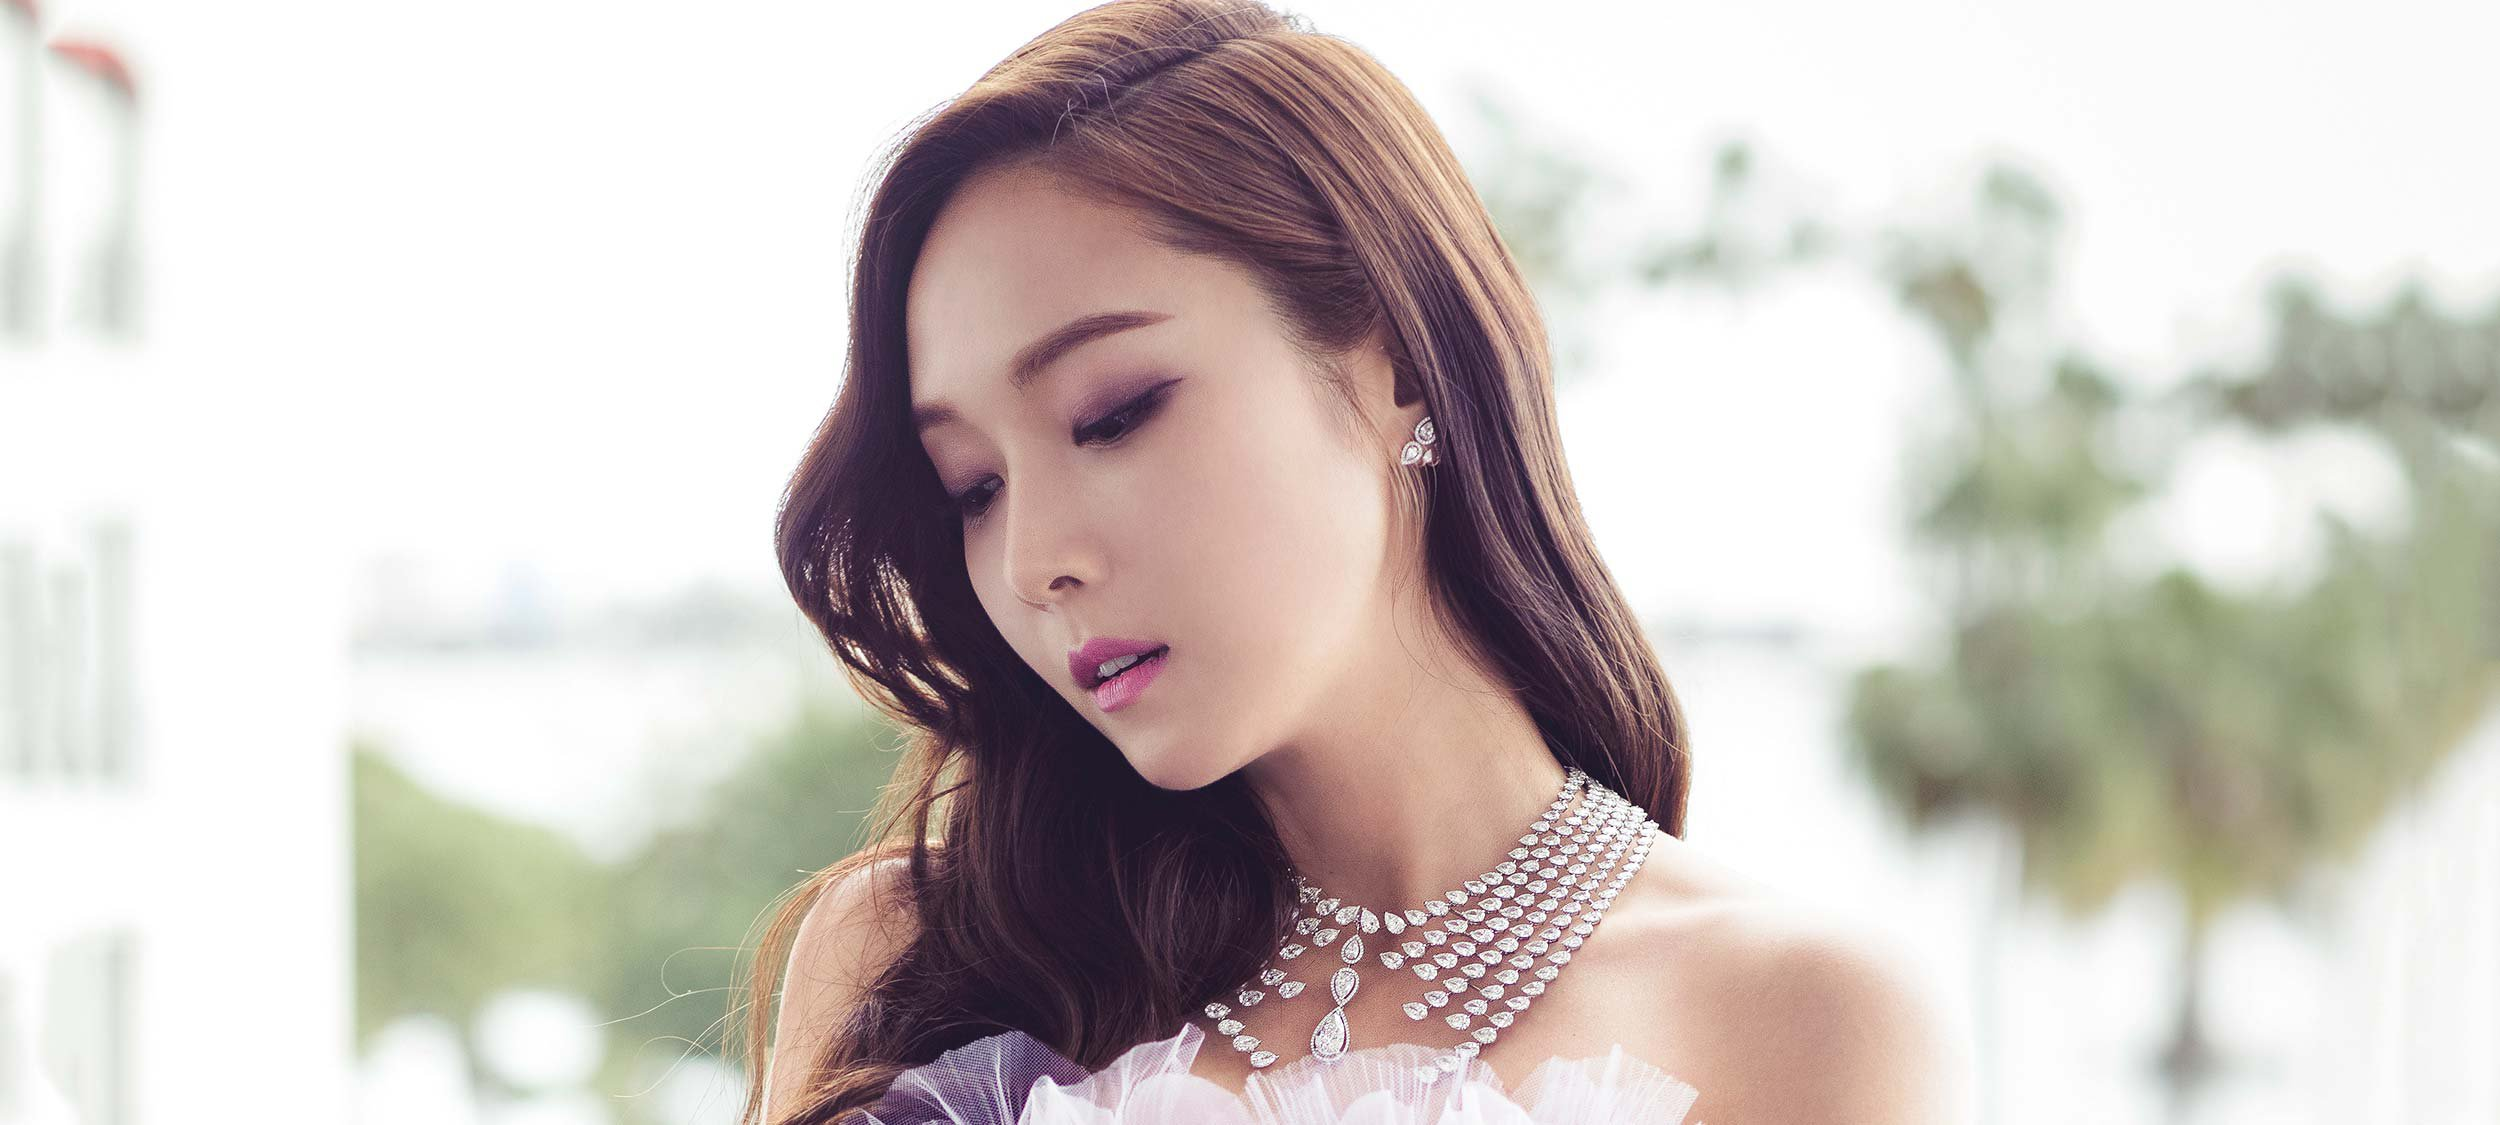 Forum on this topic: Claire Luce, jessica-jung/